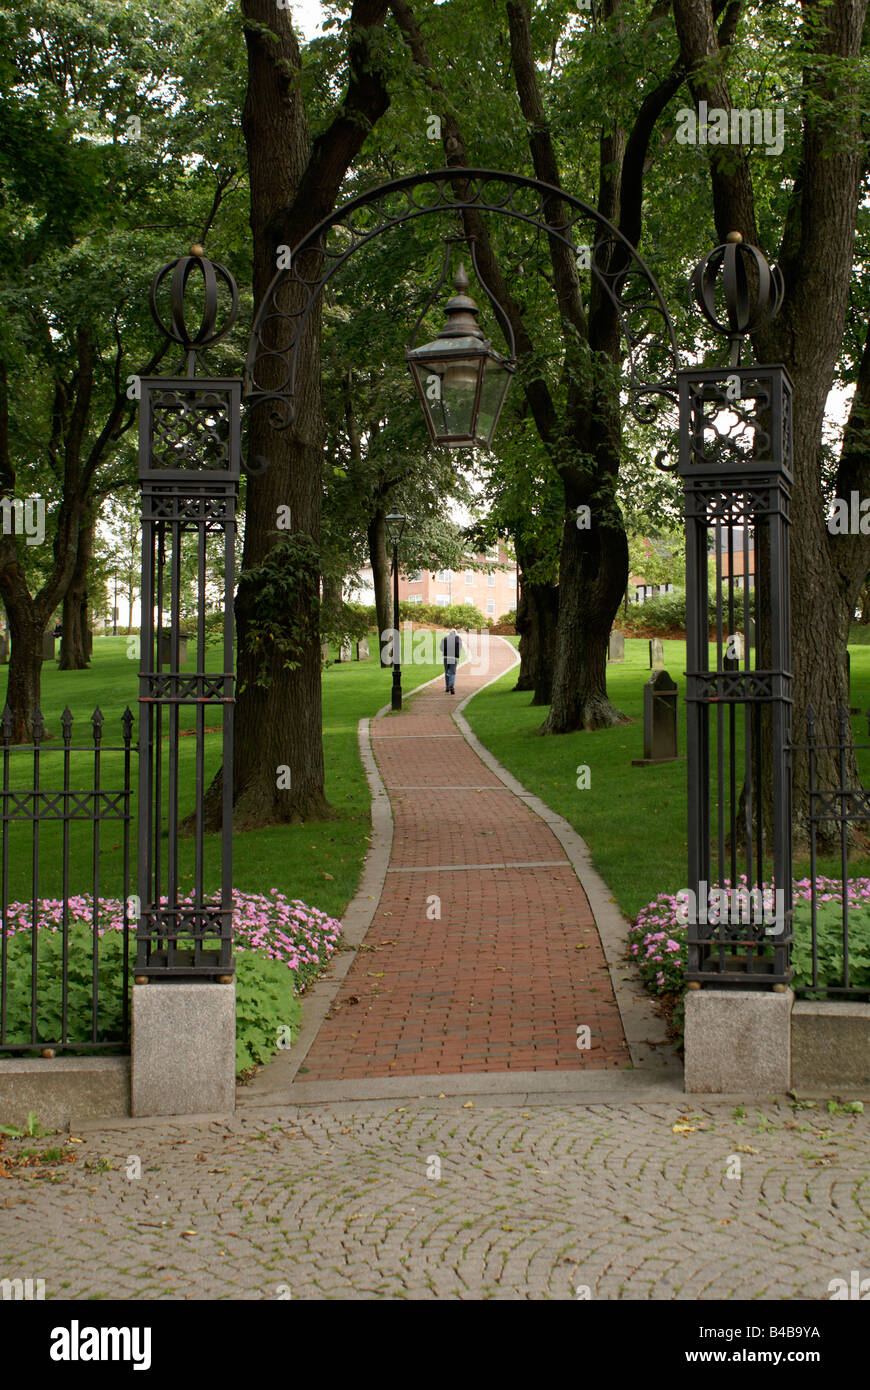 Entrance to the Loyalist Burial Ground in the city of Saint John, New Brunswick, Canada - Stock Image